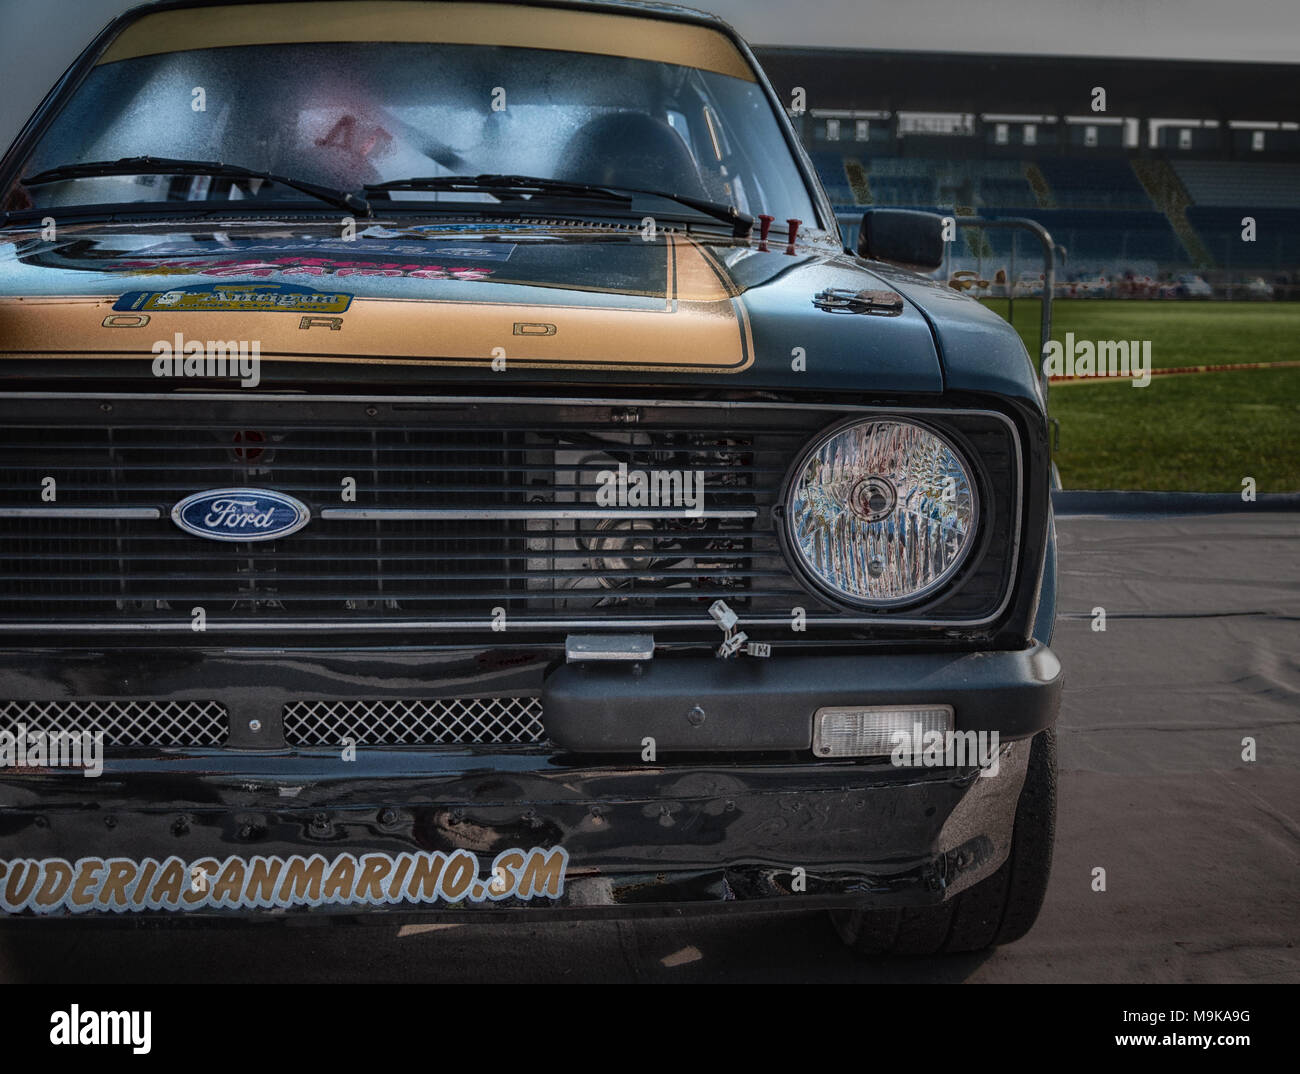 SANMARINO, SANMARINO - OTT 21, 2017 : FORD ESCORT RS 1979 in old racing car rally historical race - Stock Image